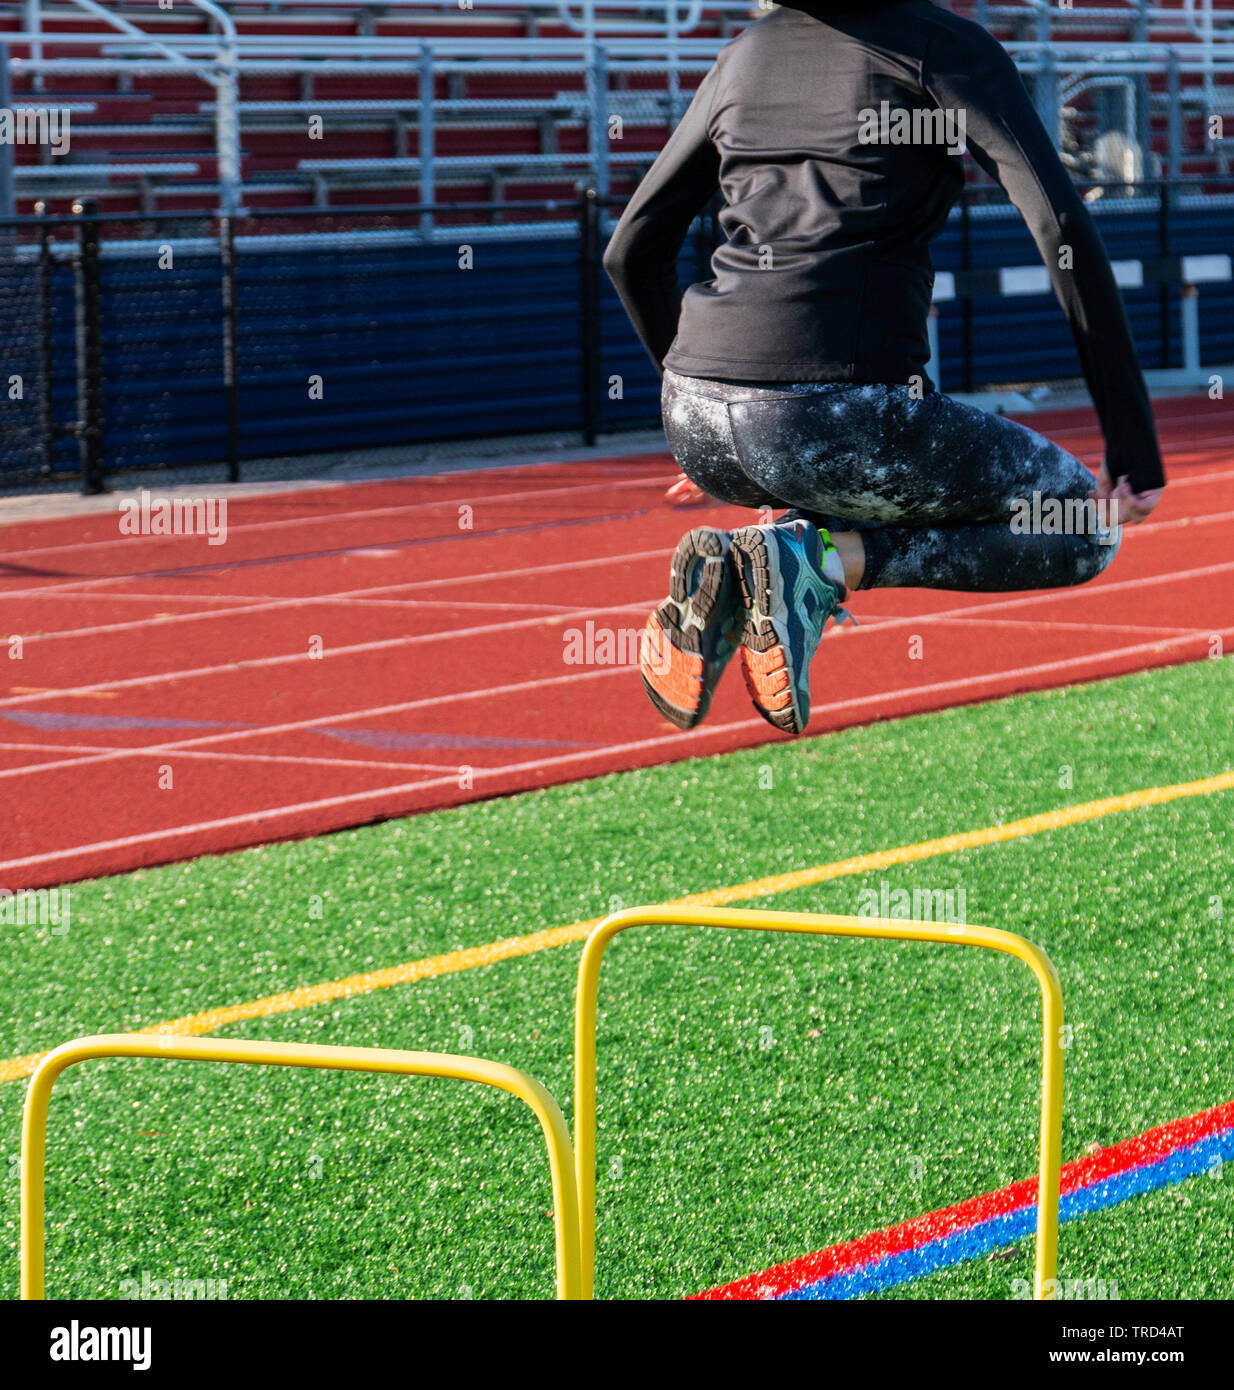 A female track and field sprinter is jumping over two foot yellow hurdles for strength, balance and coordination on a green turf field with the bleach Stock Photo